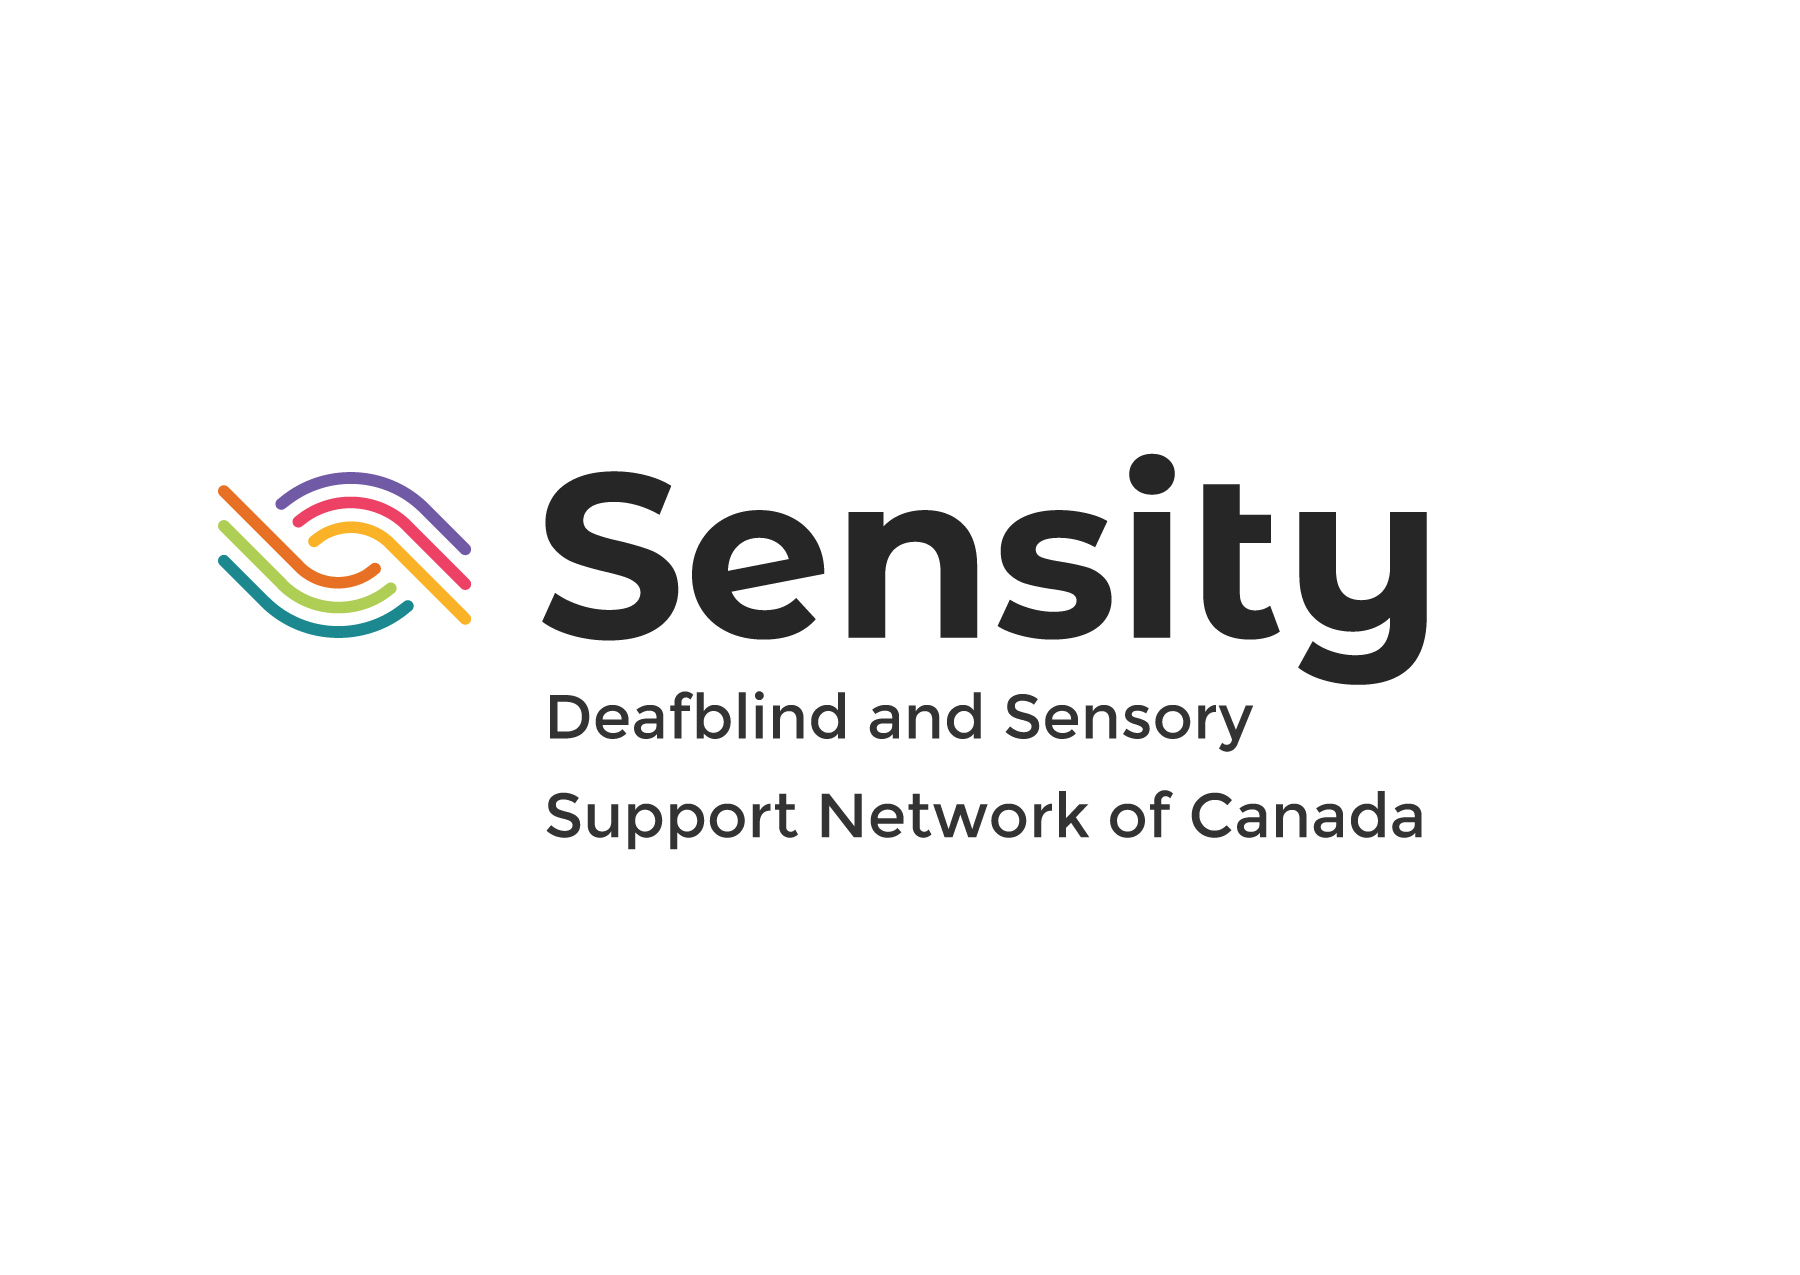 Sensity Deafblind and Sensory Support Network of Canada